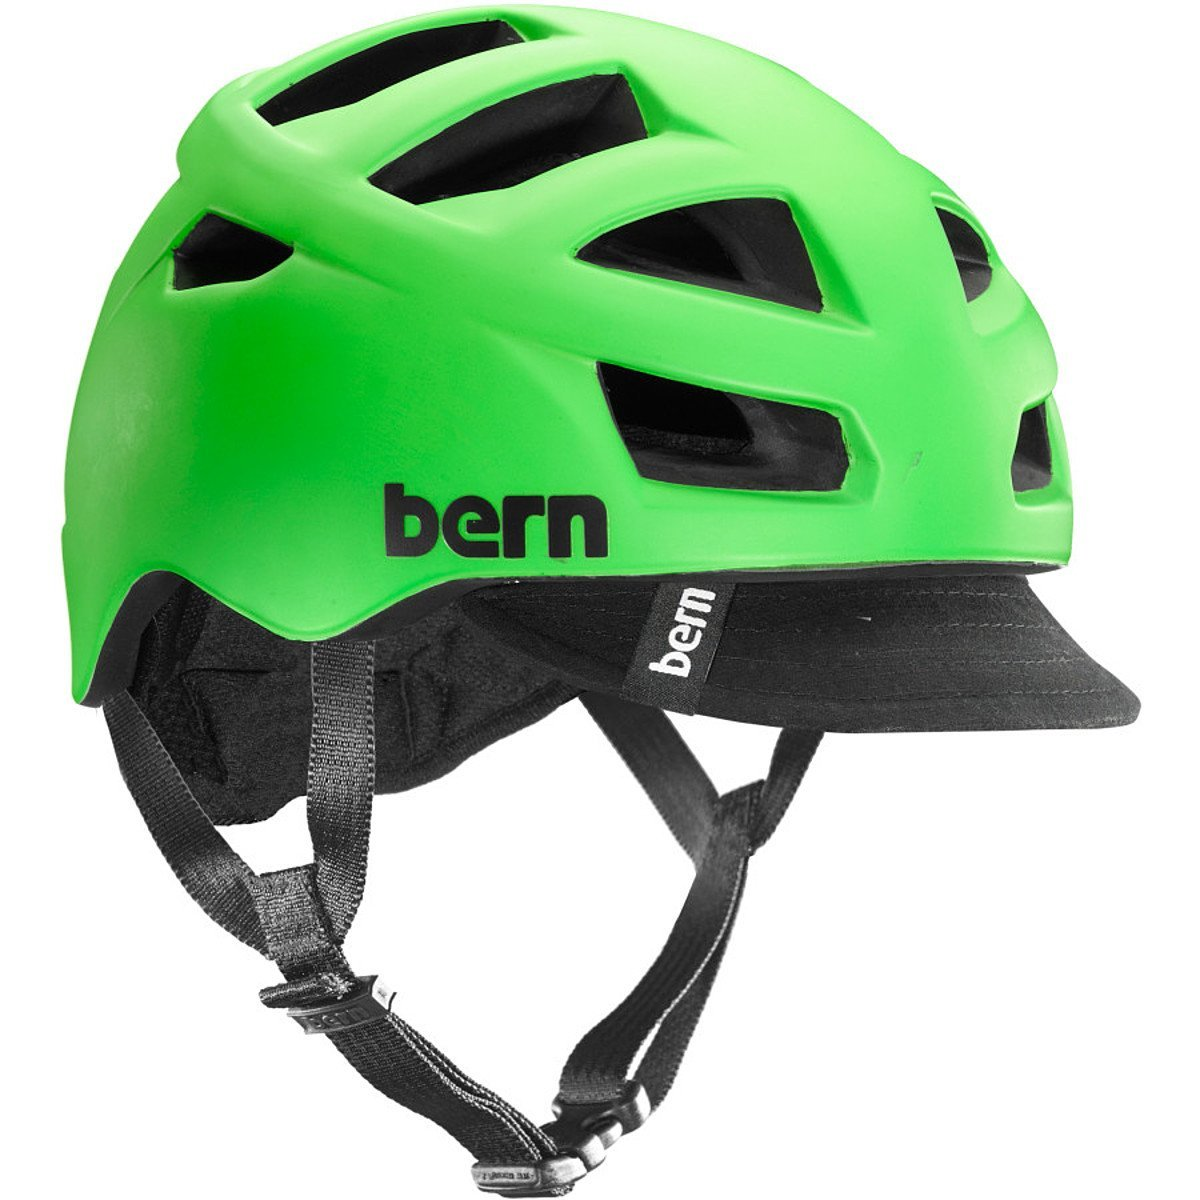 Green Bern Bicycle Helmets